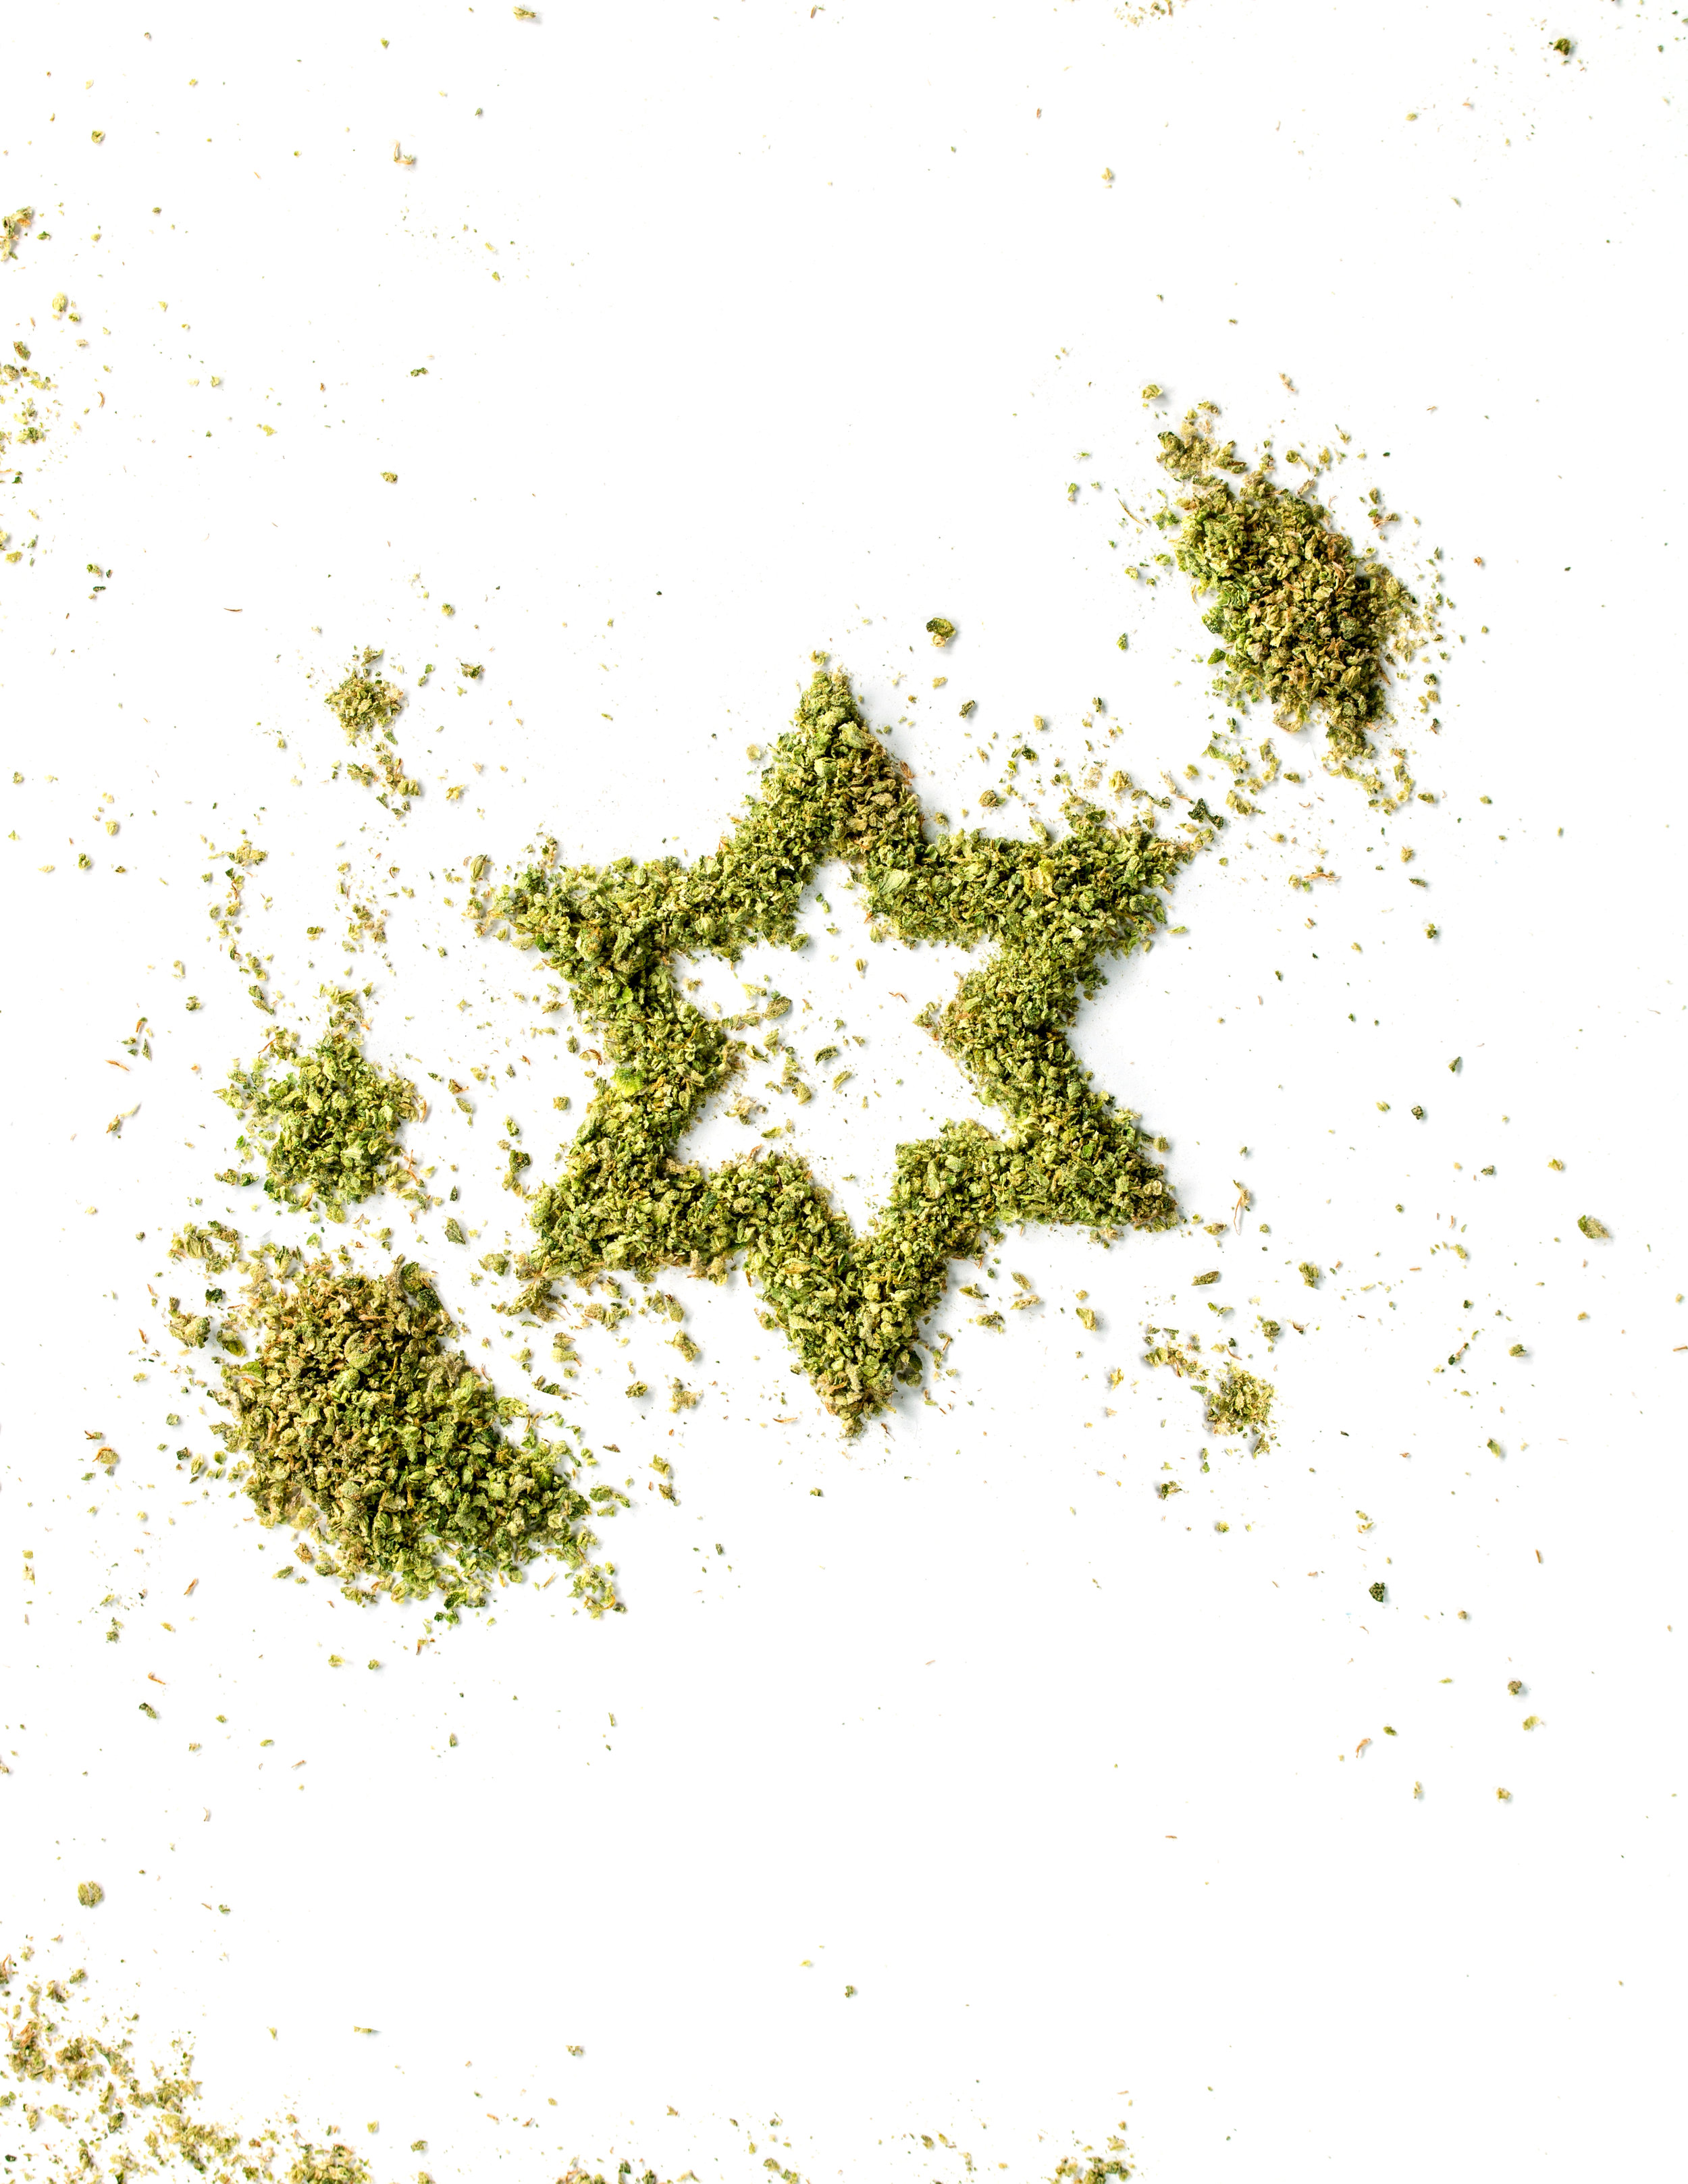 Our Focus - The America Israel Cannabis Association focuses on innovation within the cannabis industry. We showcase research, brands, and new technologies to decision makers across the world.